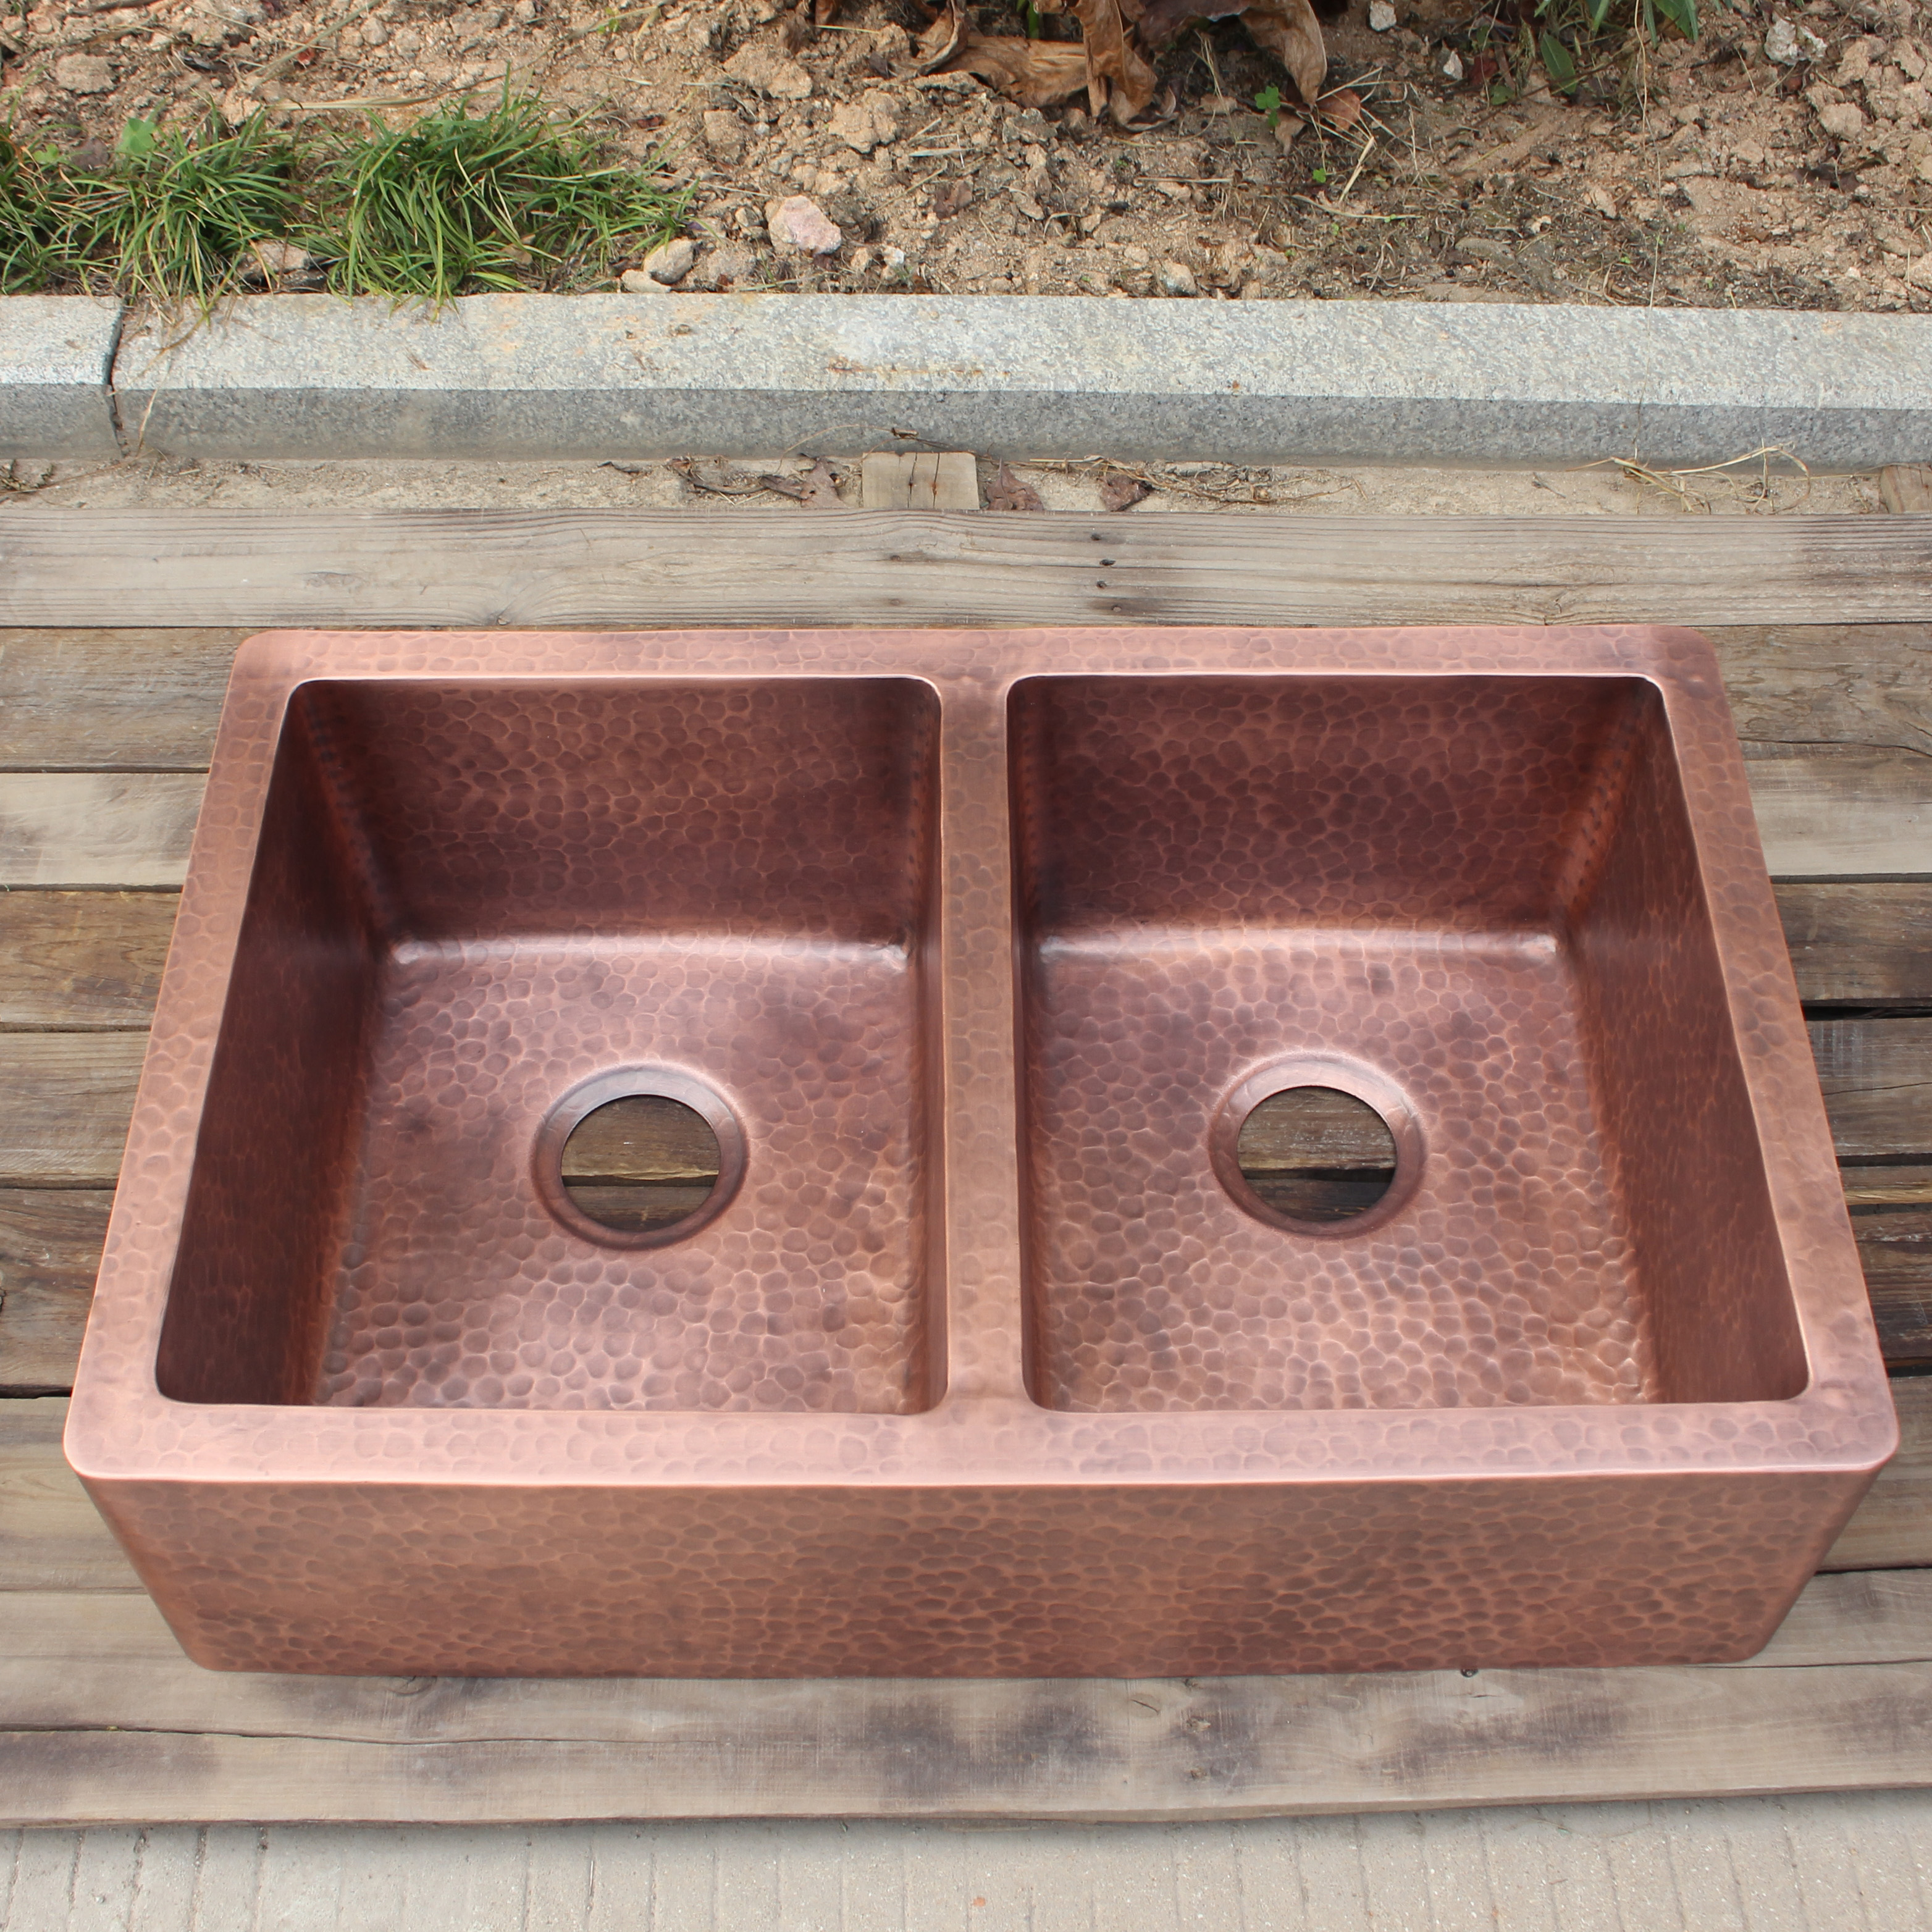 hand hammered copper farmhouse sink light hammered kitchen copper sink with double bowl design buy hand hammered farmhouse sink kitchen sink copper